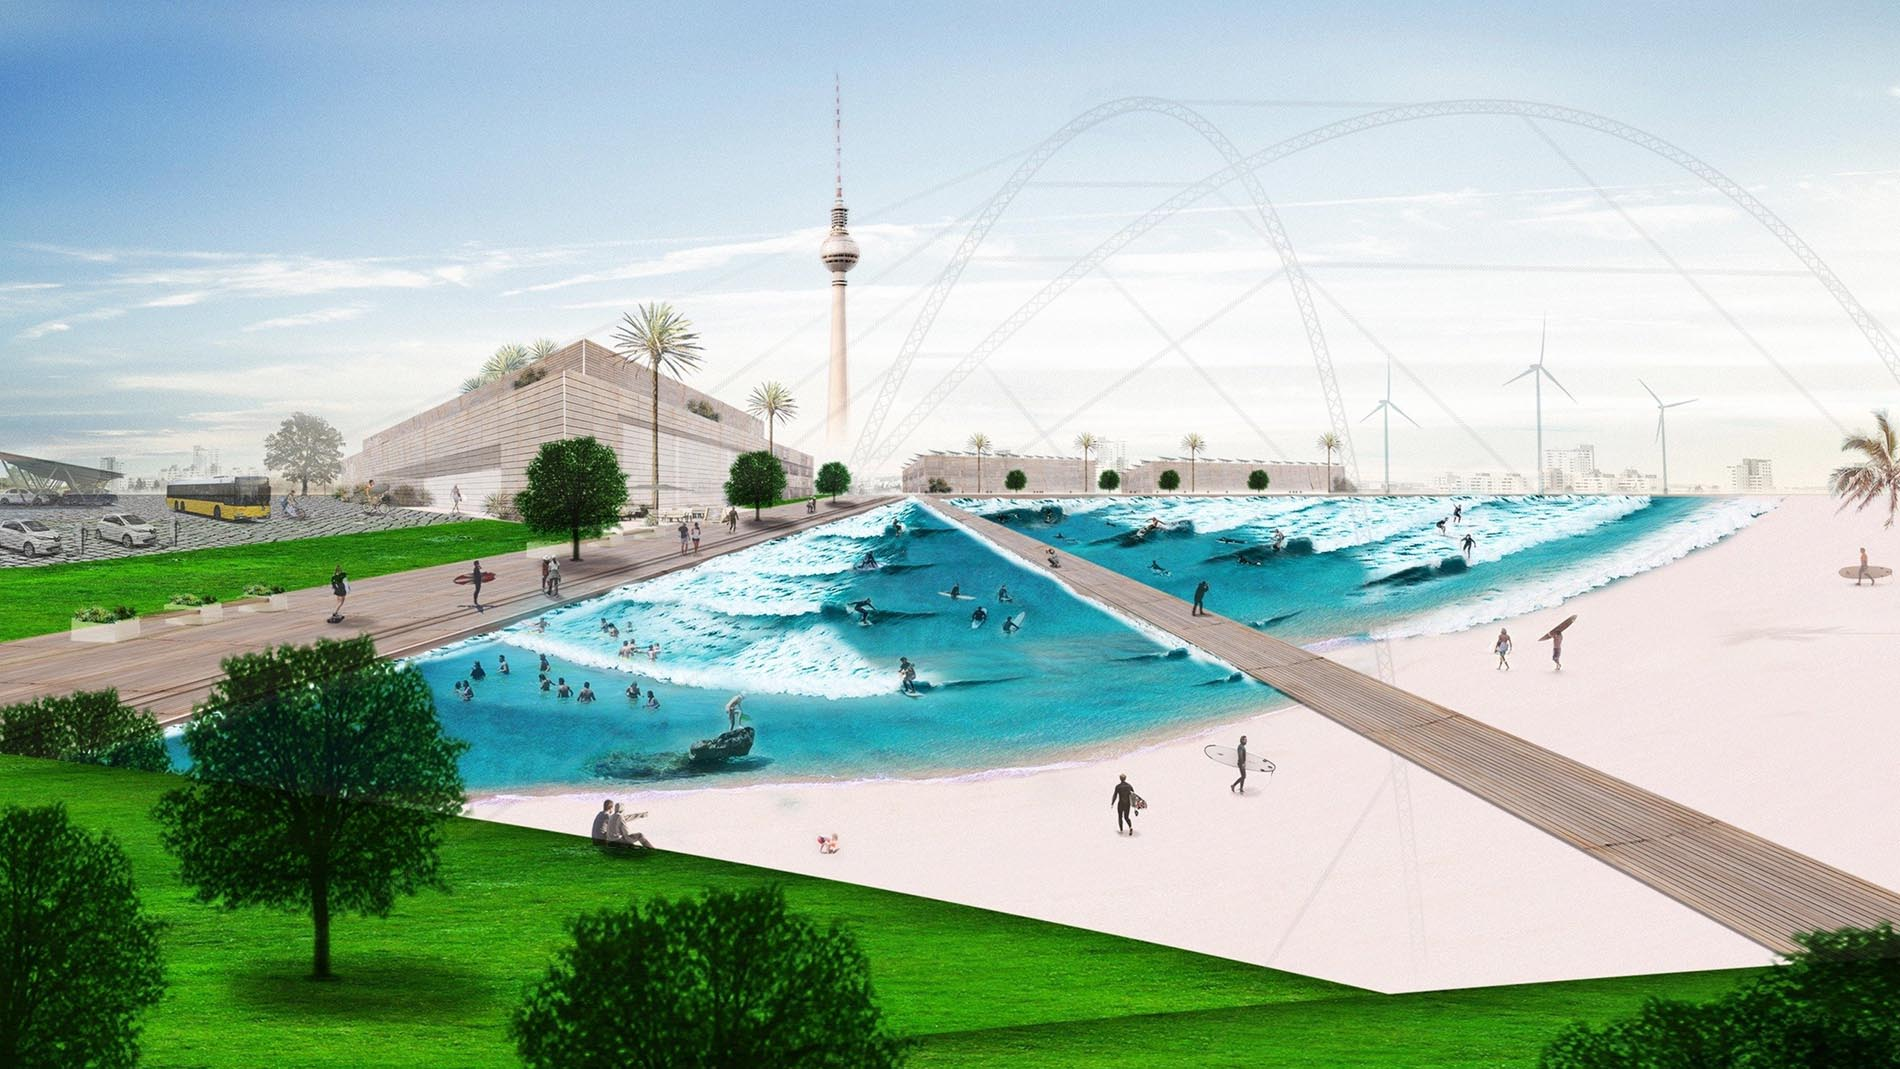 The Berlin wave pool artist sketch